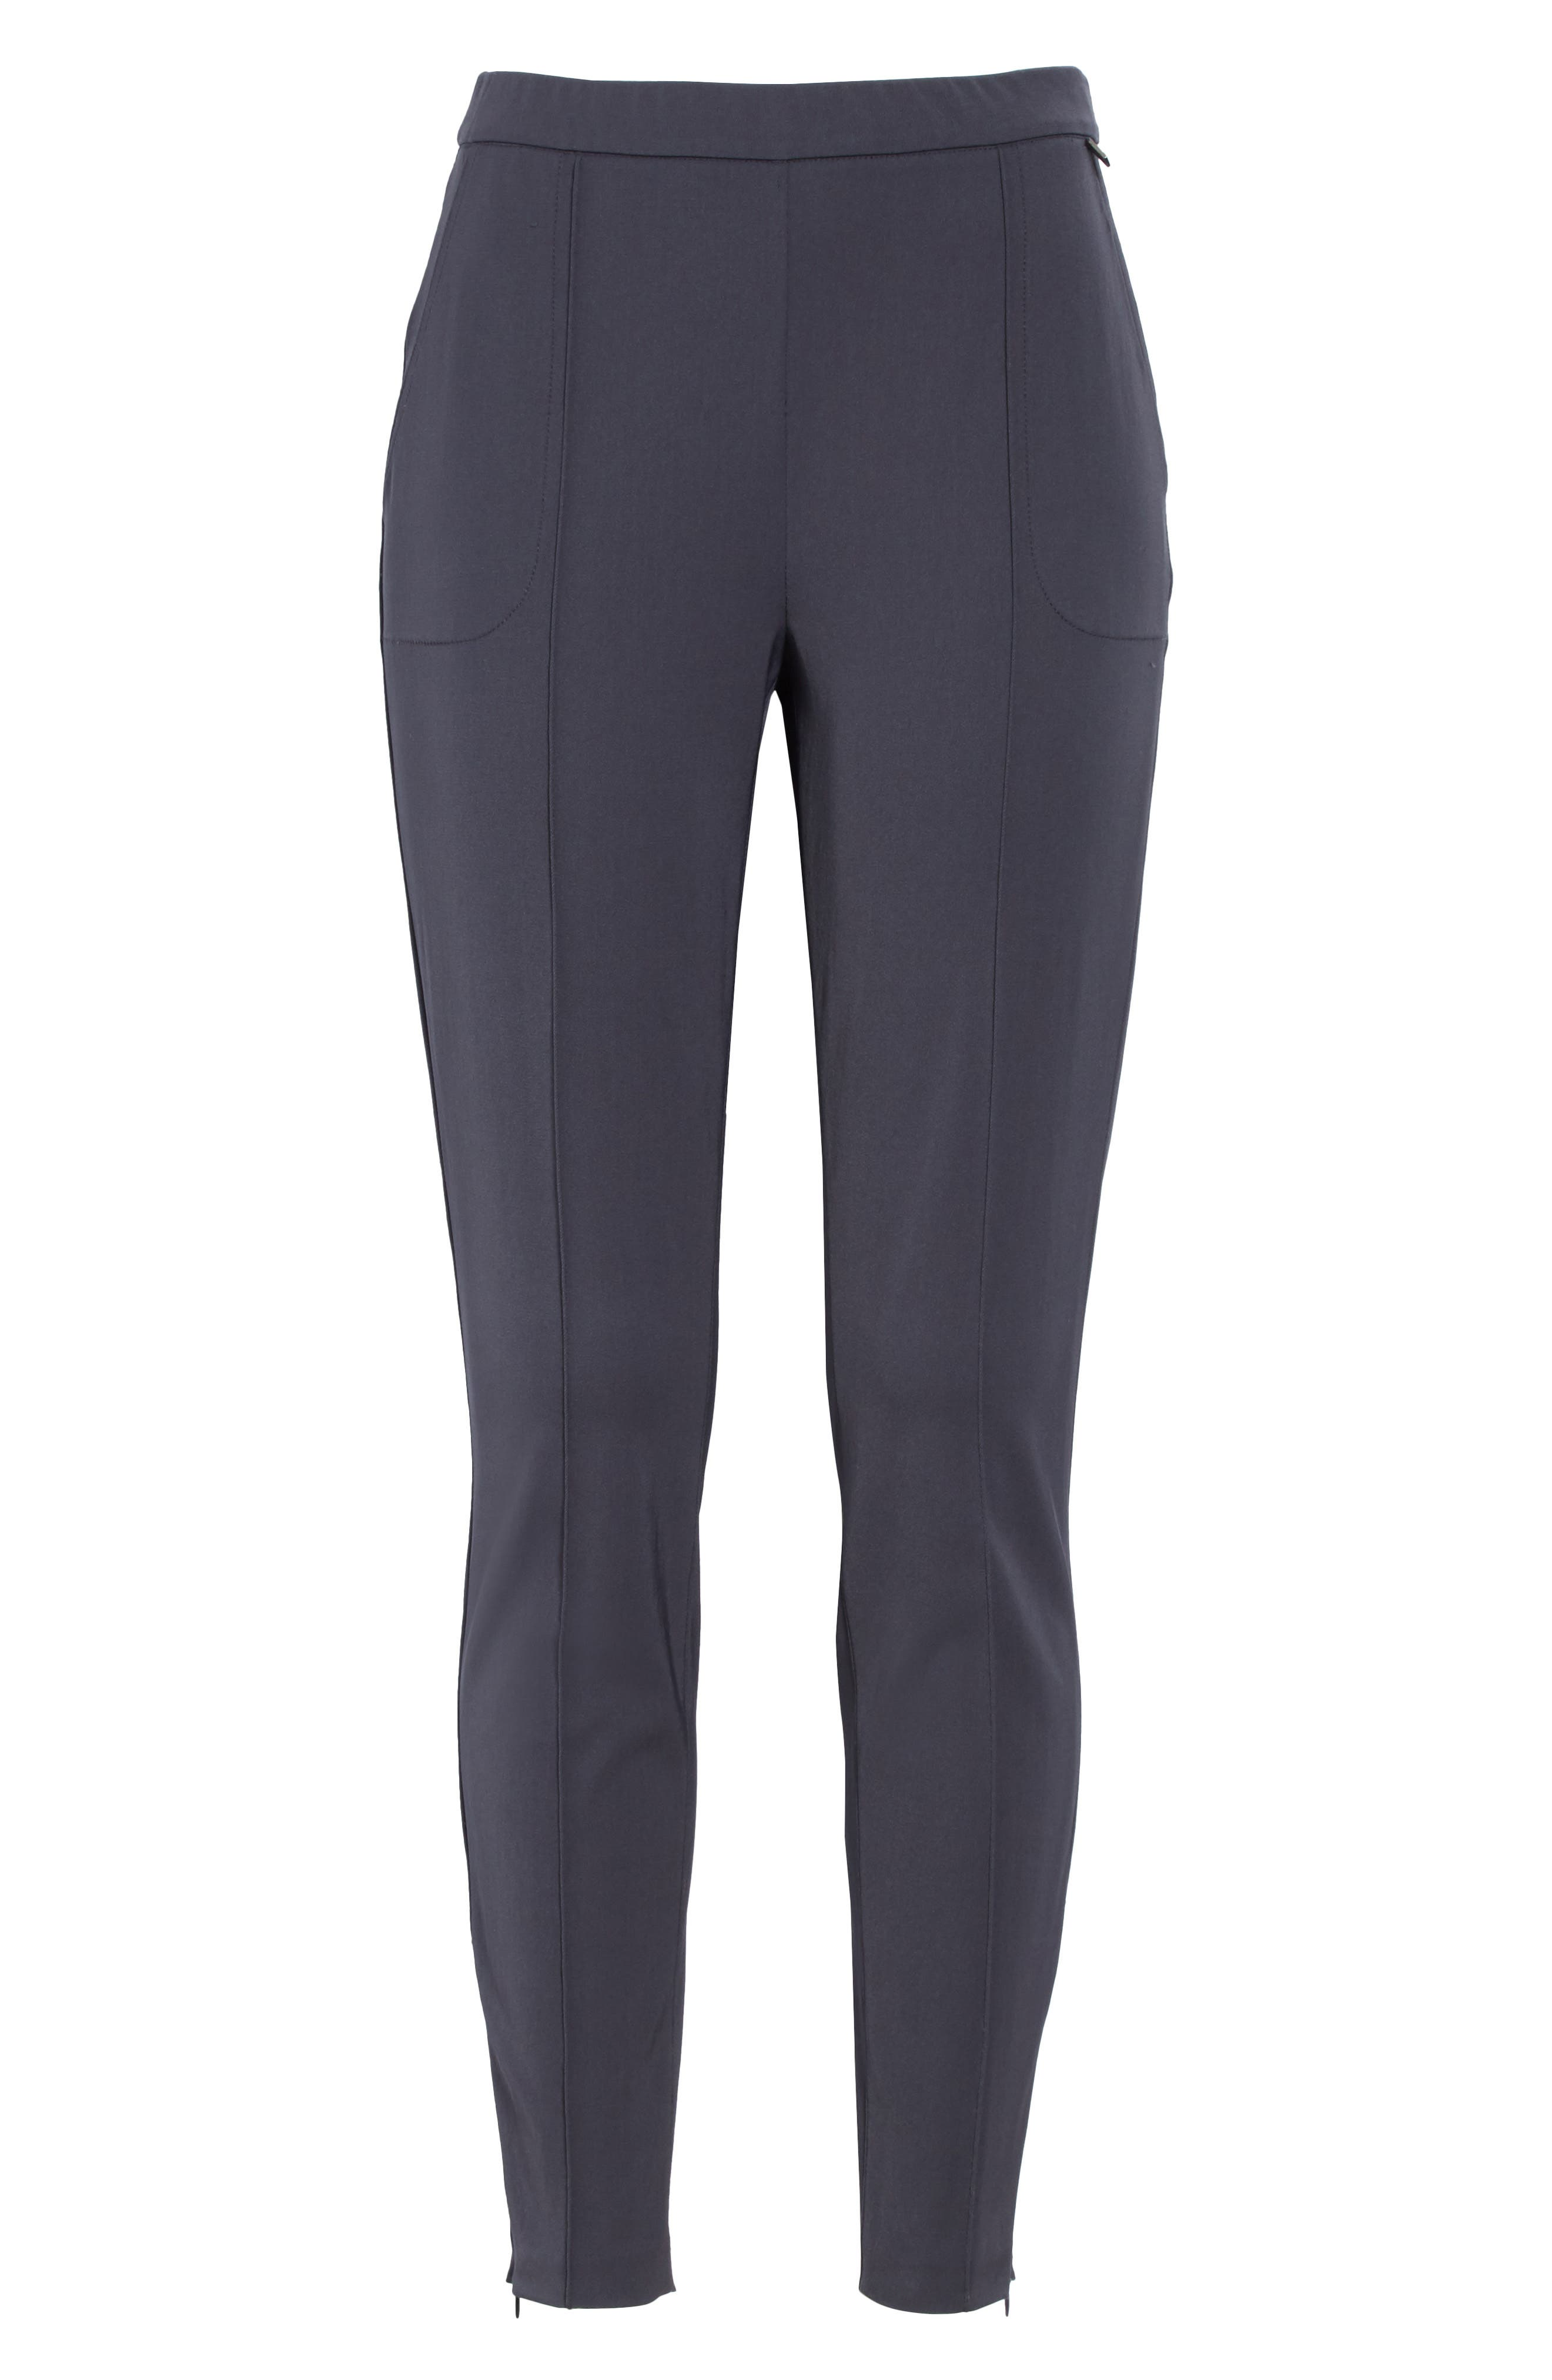 Stretch Tech Twill Pants,                             Alternate thumbnail 7, color,                             Anthracite